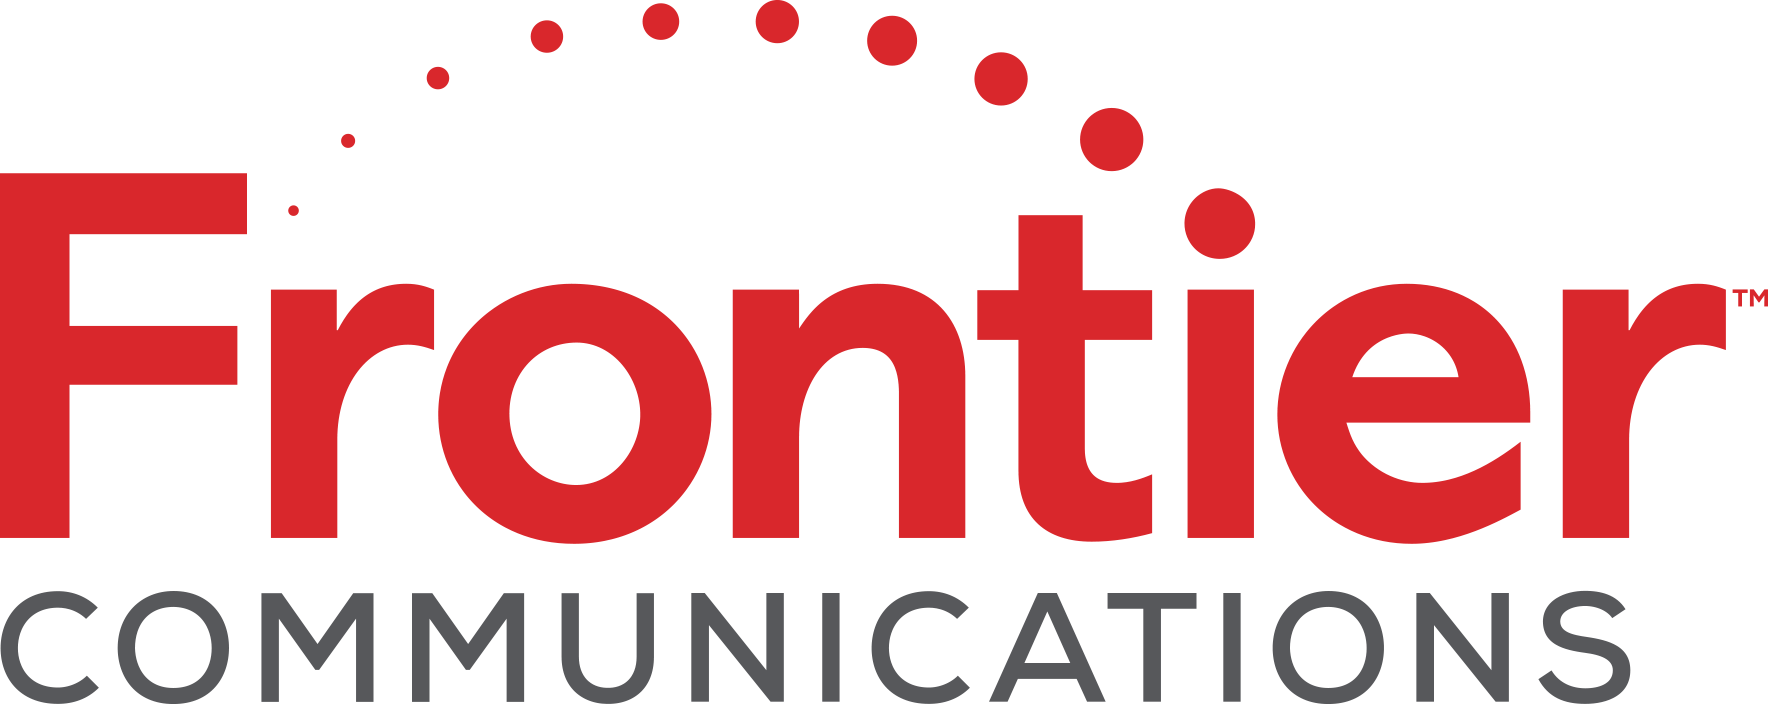 Frontier Communications.